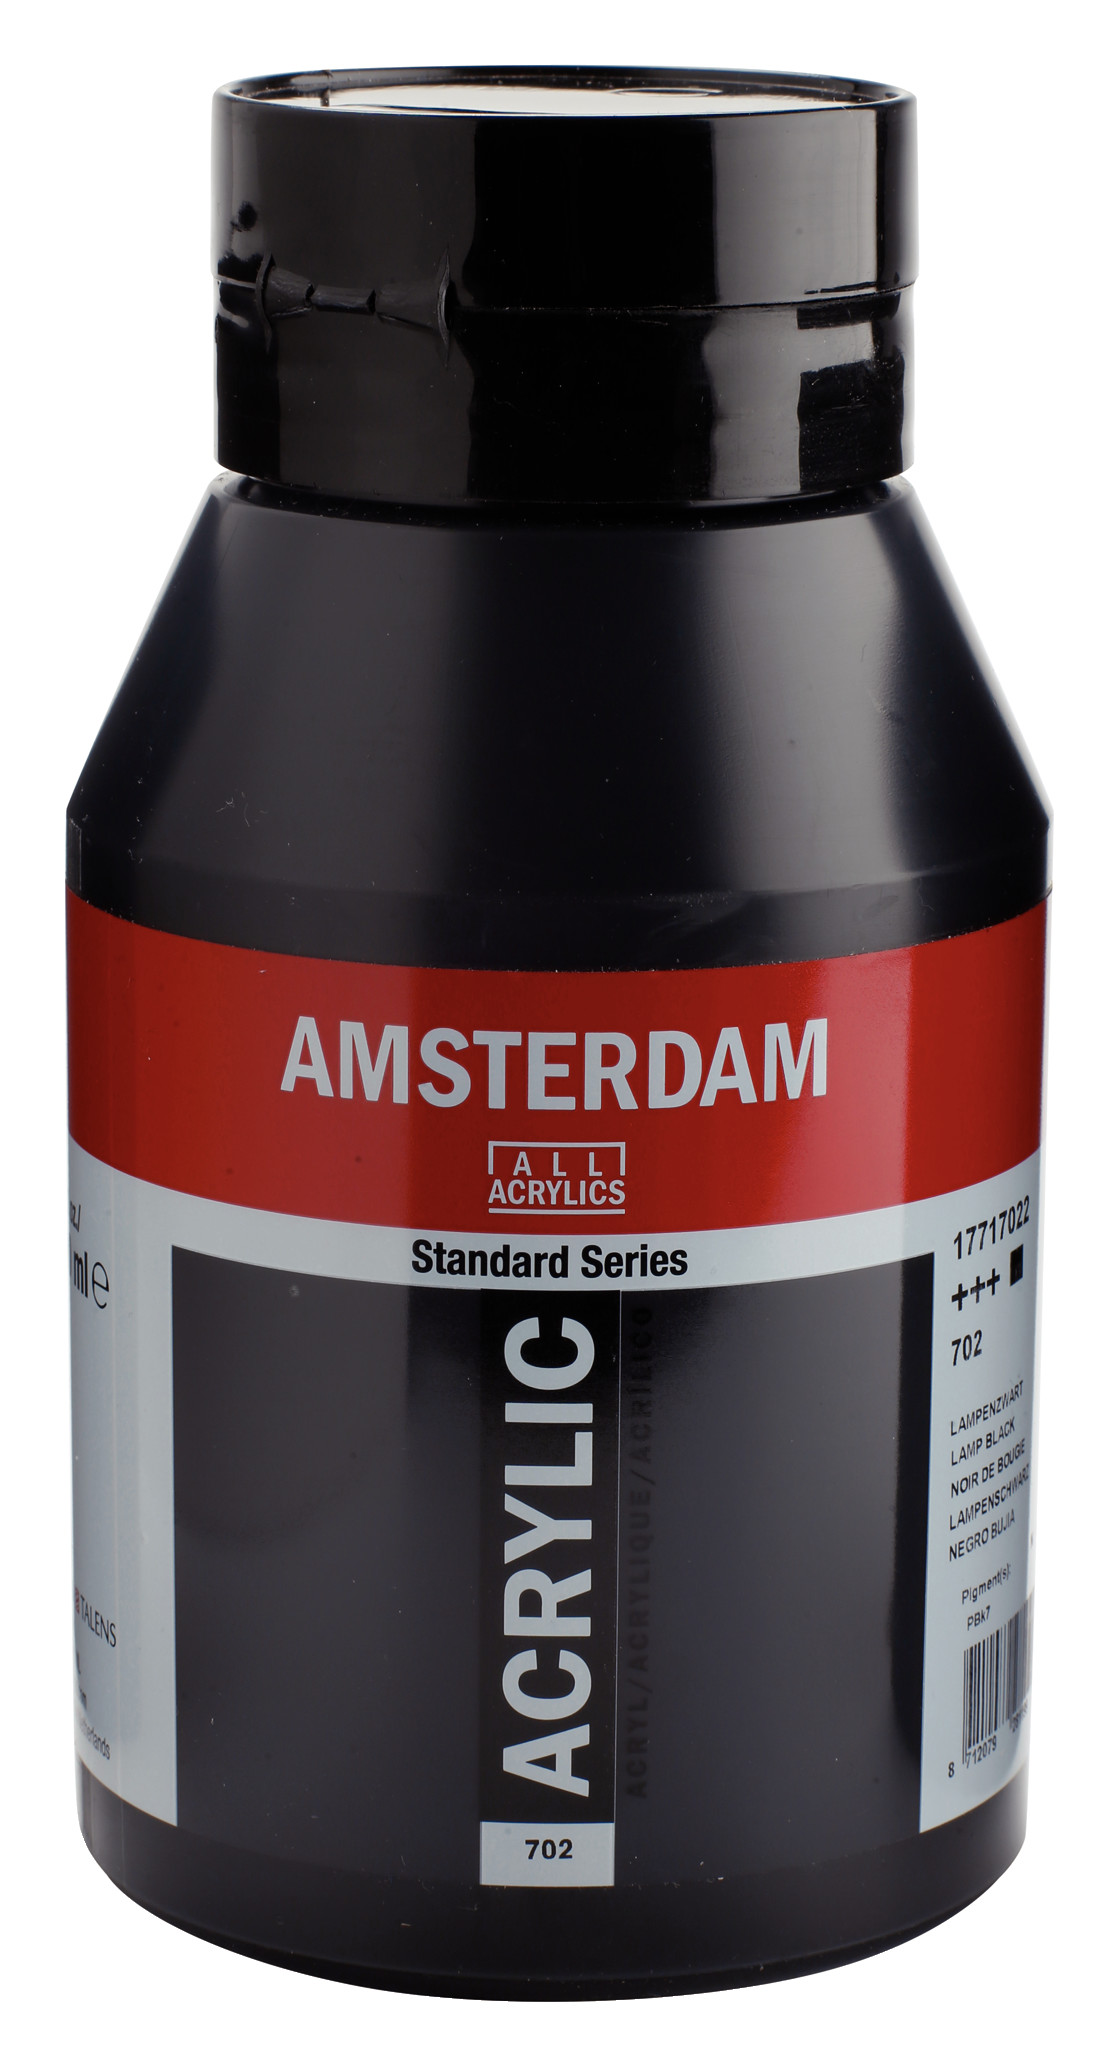 Amsterdam Standard Series Acrylic Jar 1000 ml Lamp black 702